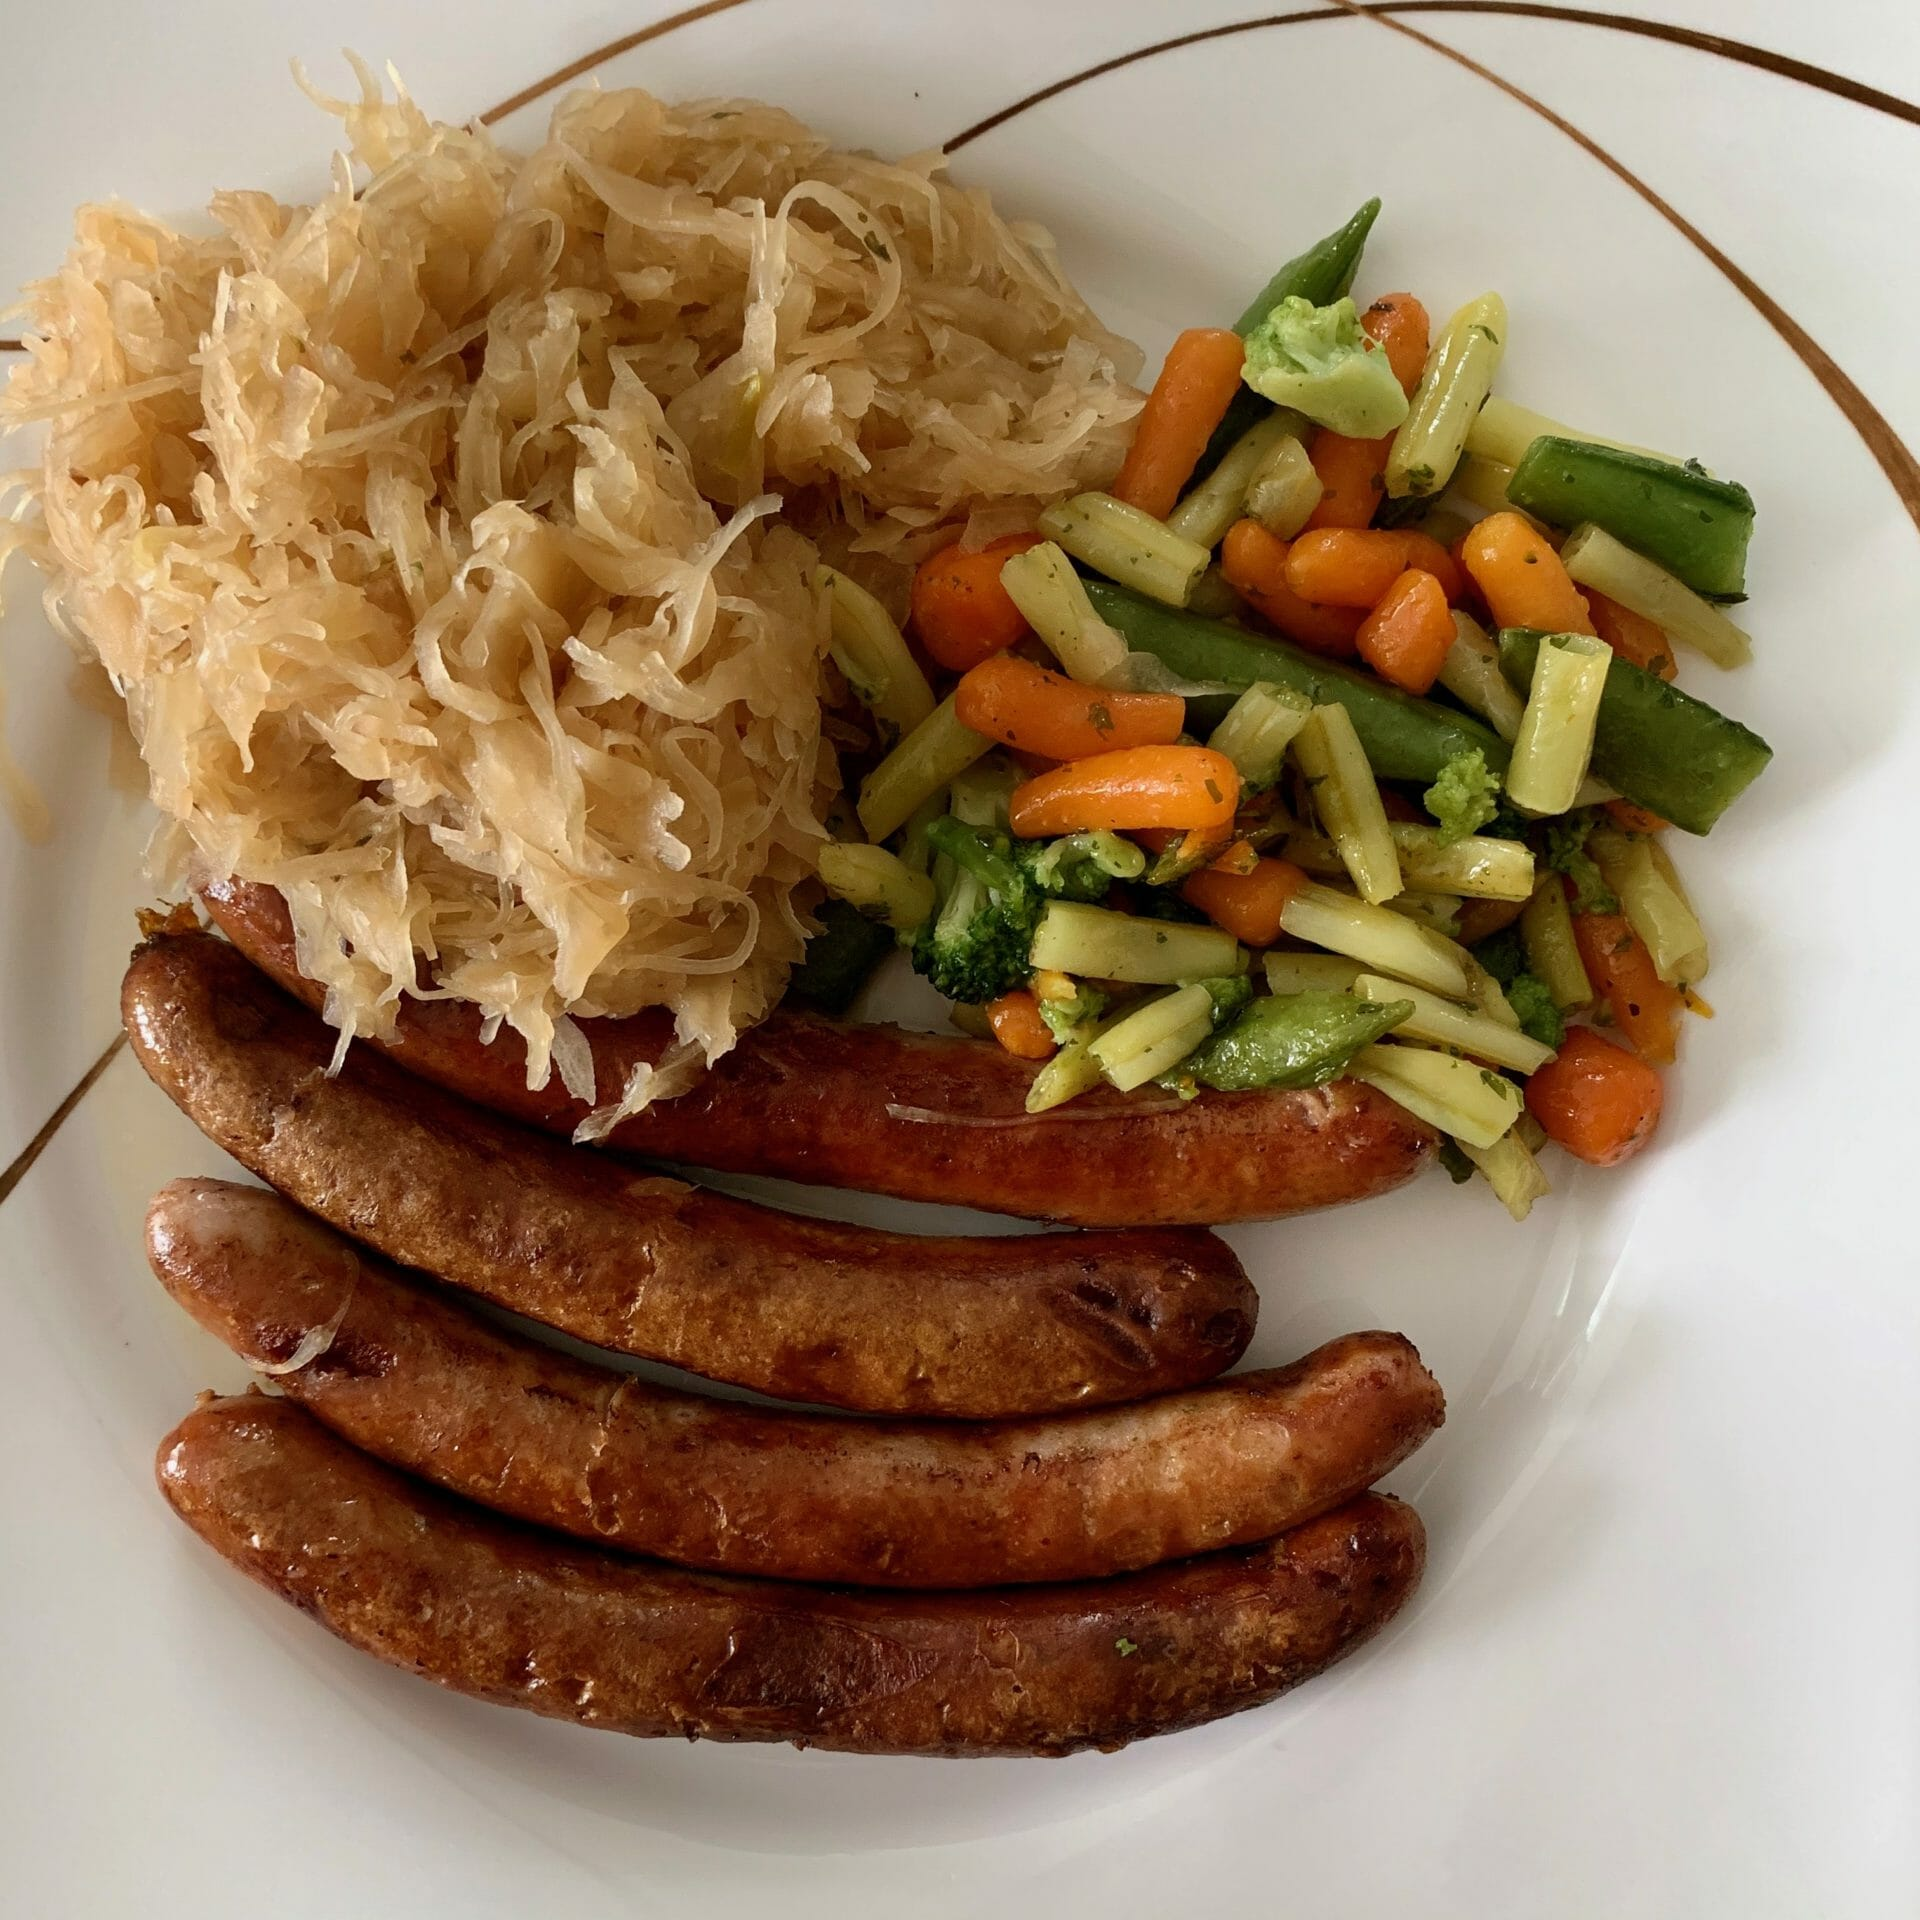 Port sausages with sauerkraut, carrots, green beans and broccoli